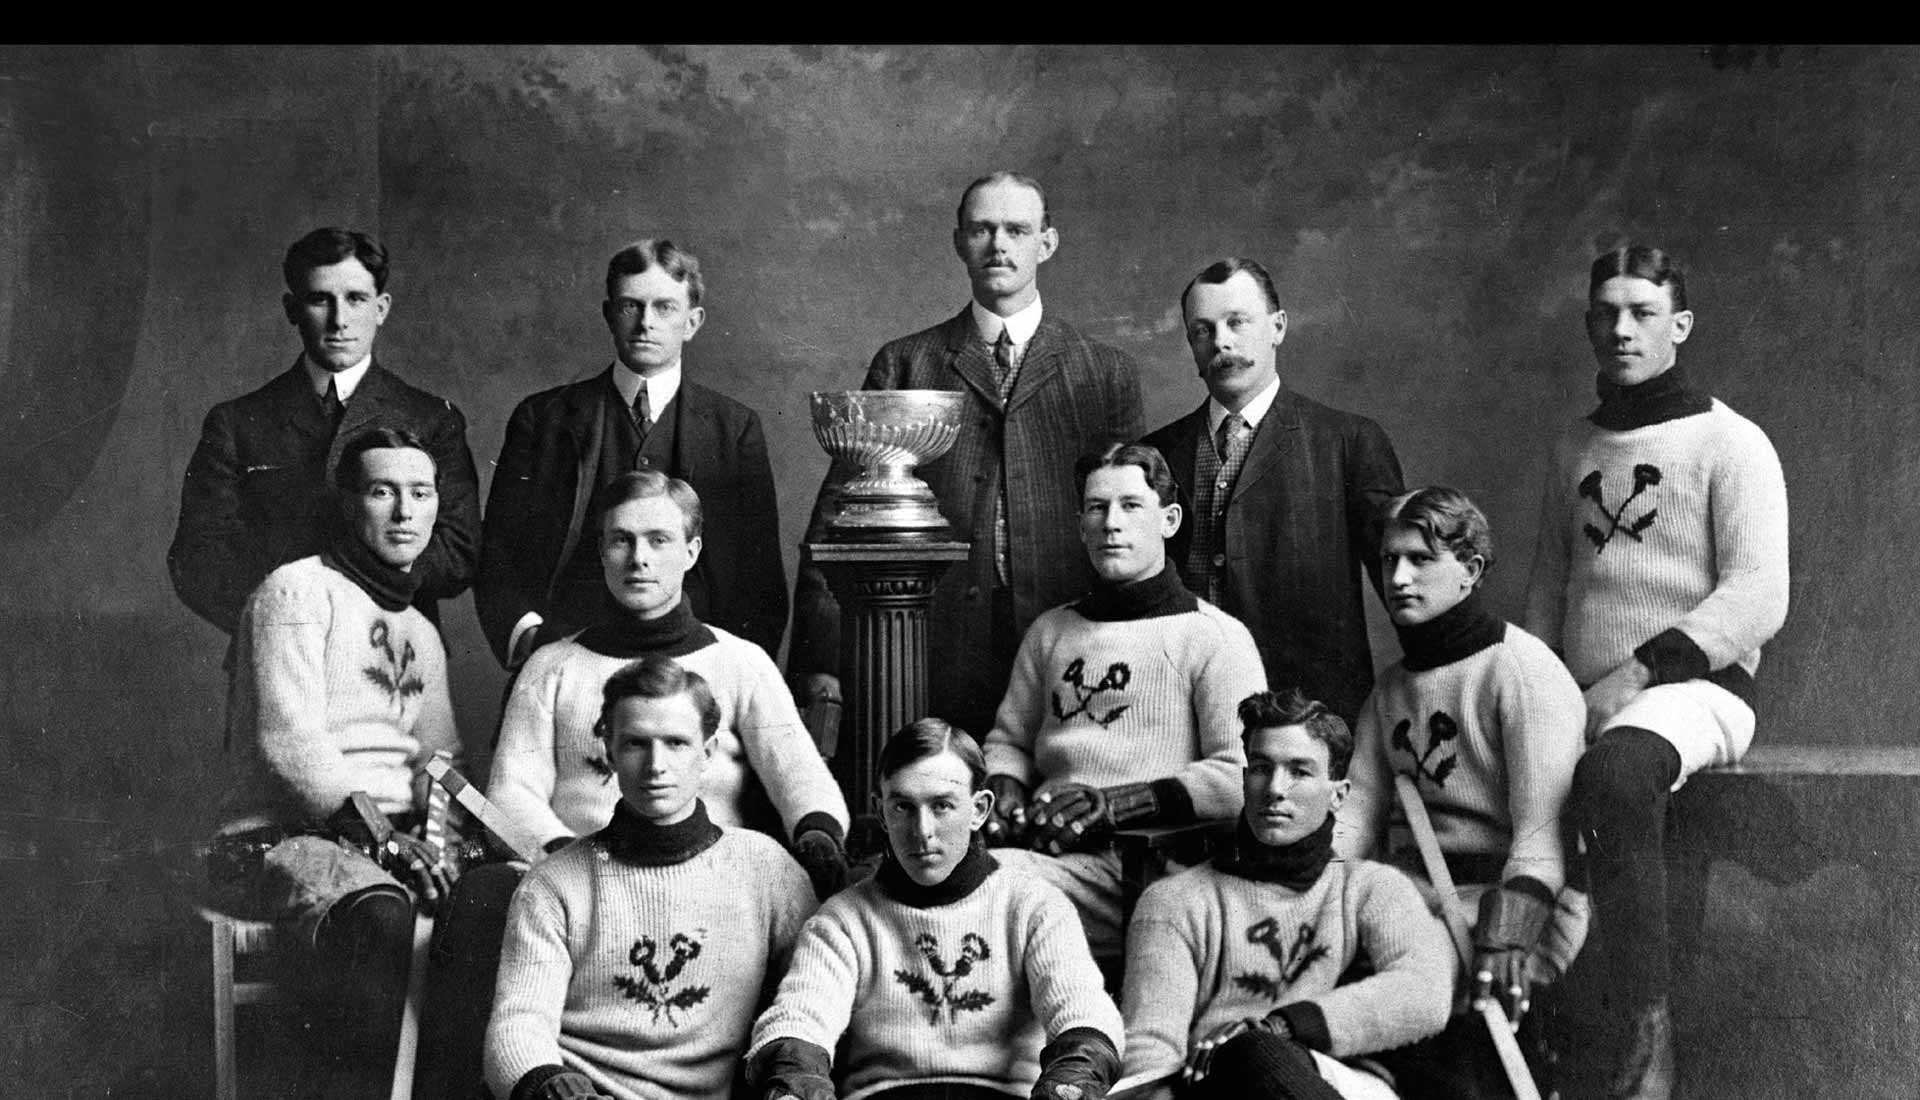 Kenora Thistles, 1907 (Photo courtesy of the Hockey Hall of Fame)